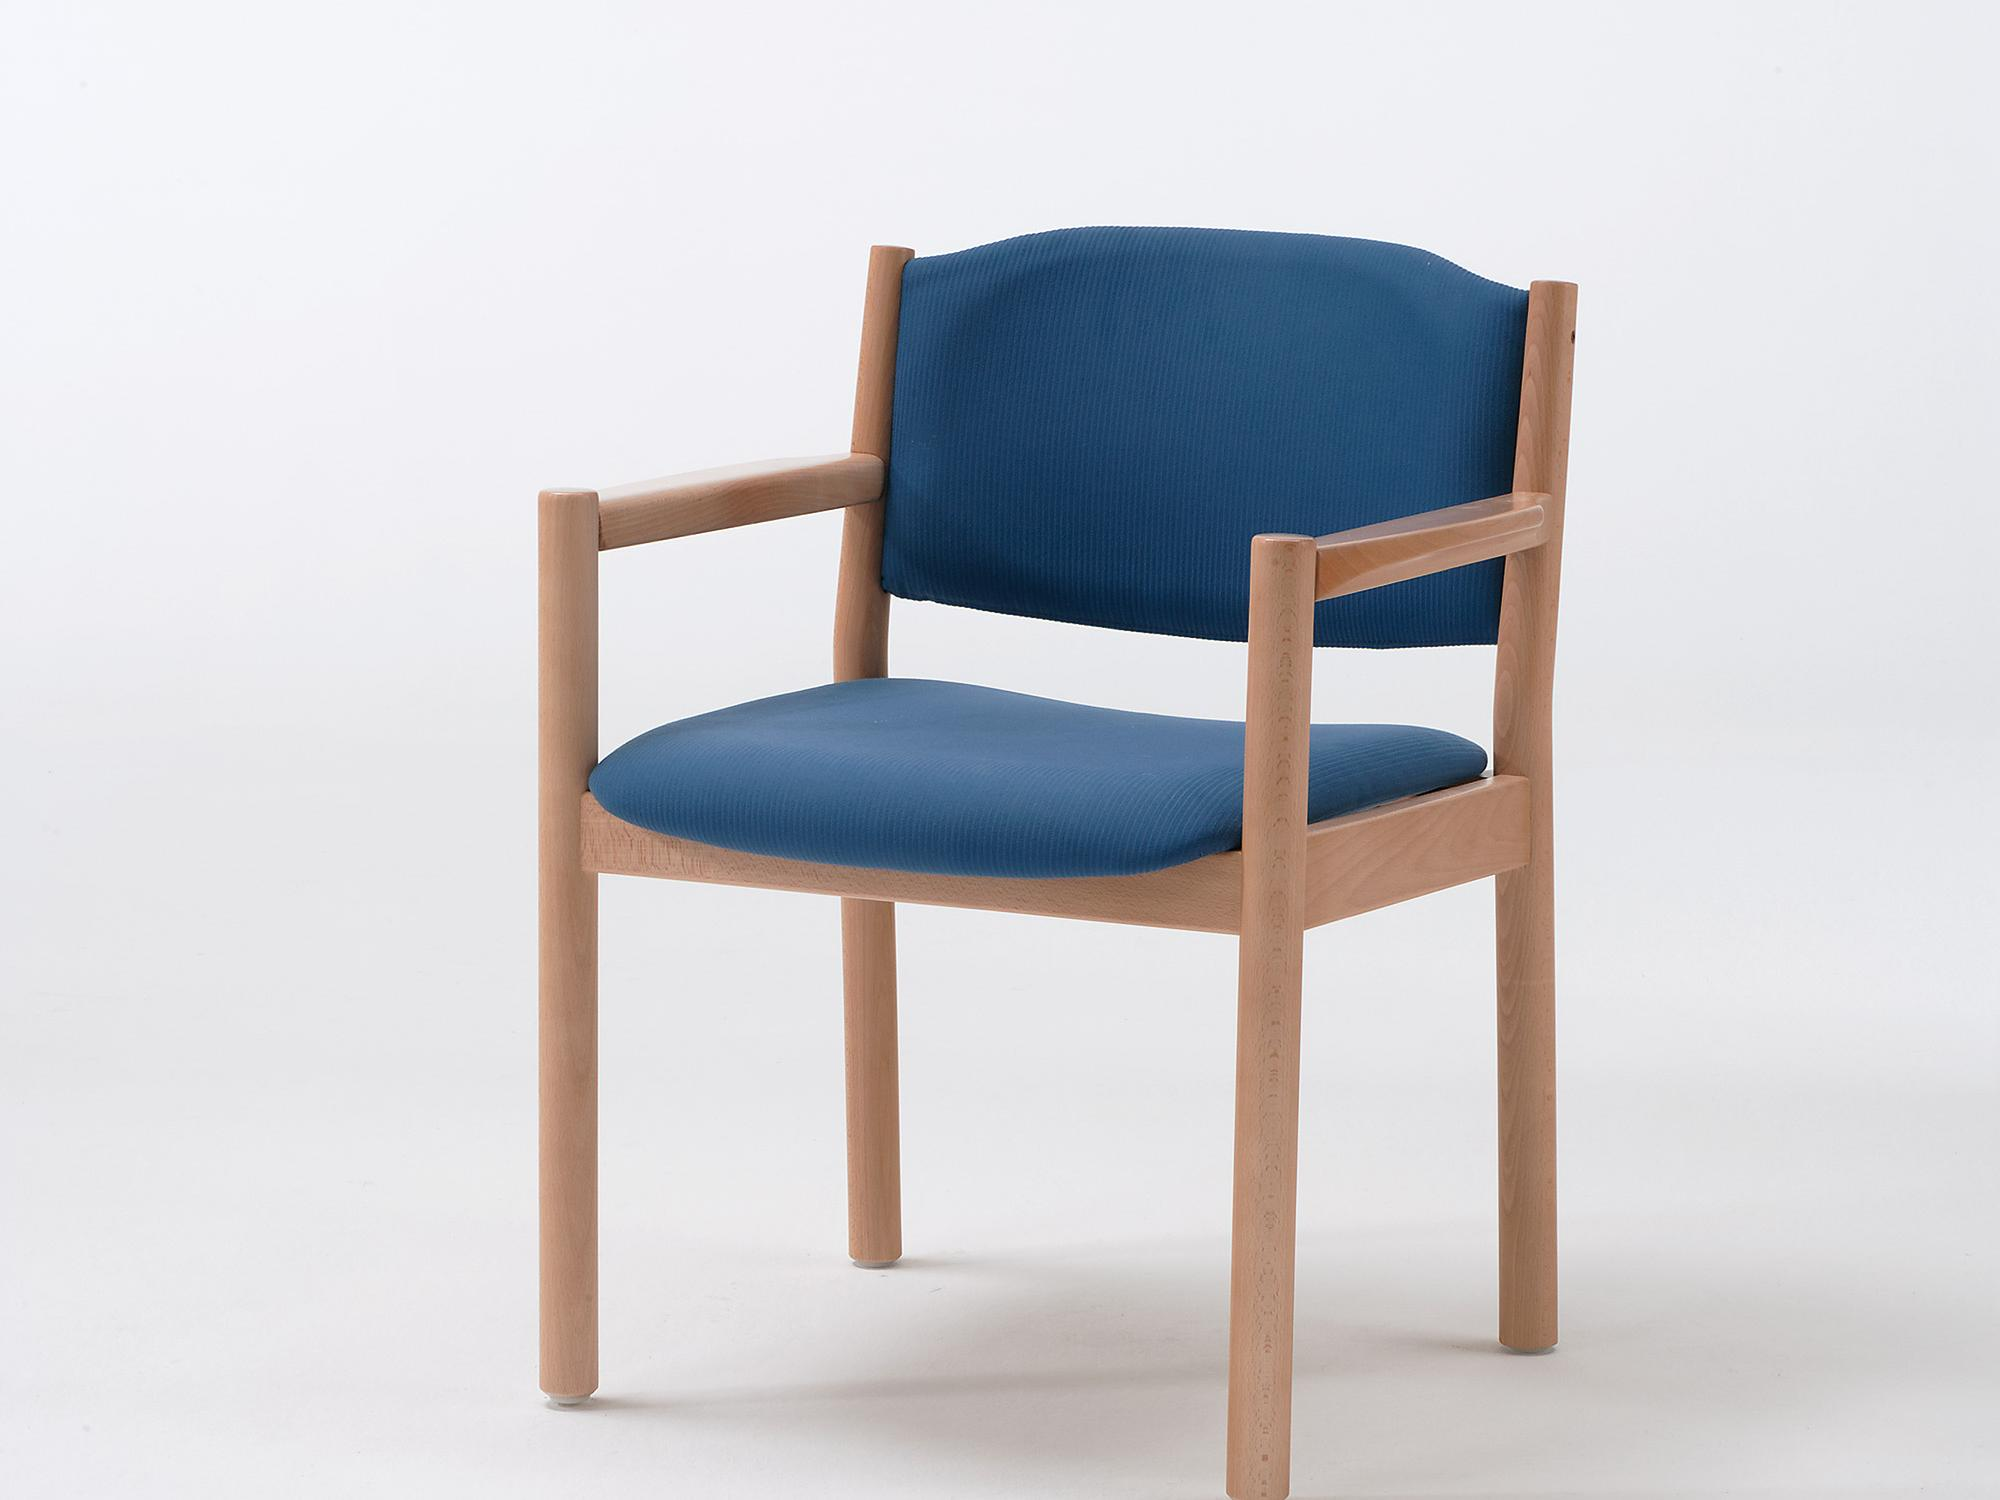 The Primo model as an armchair